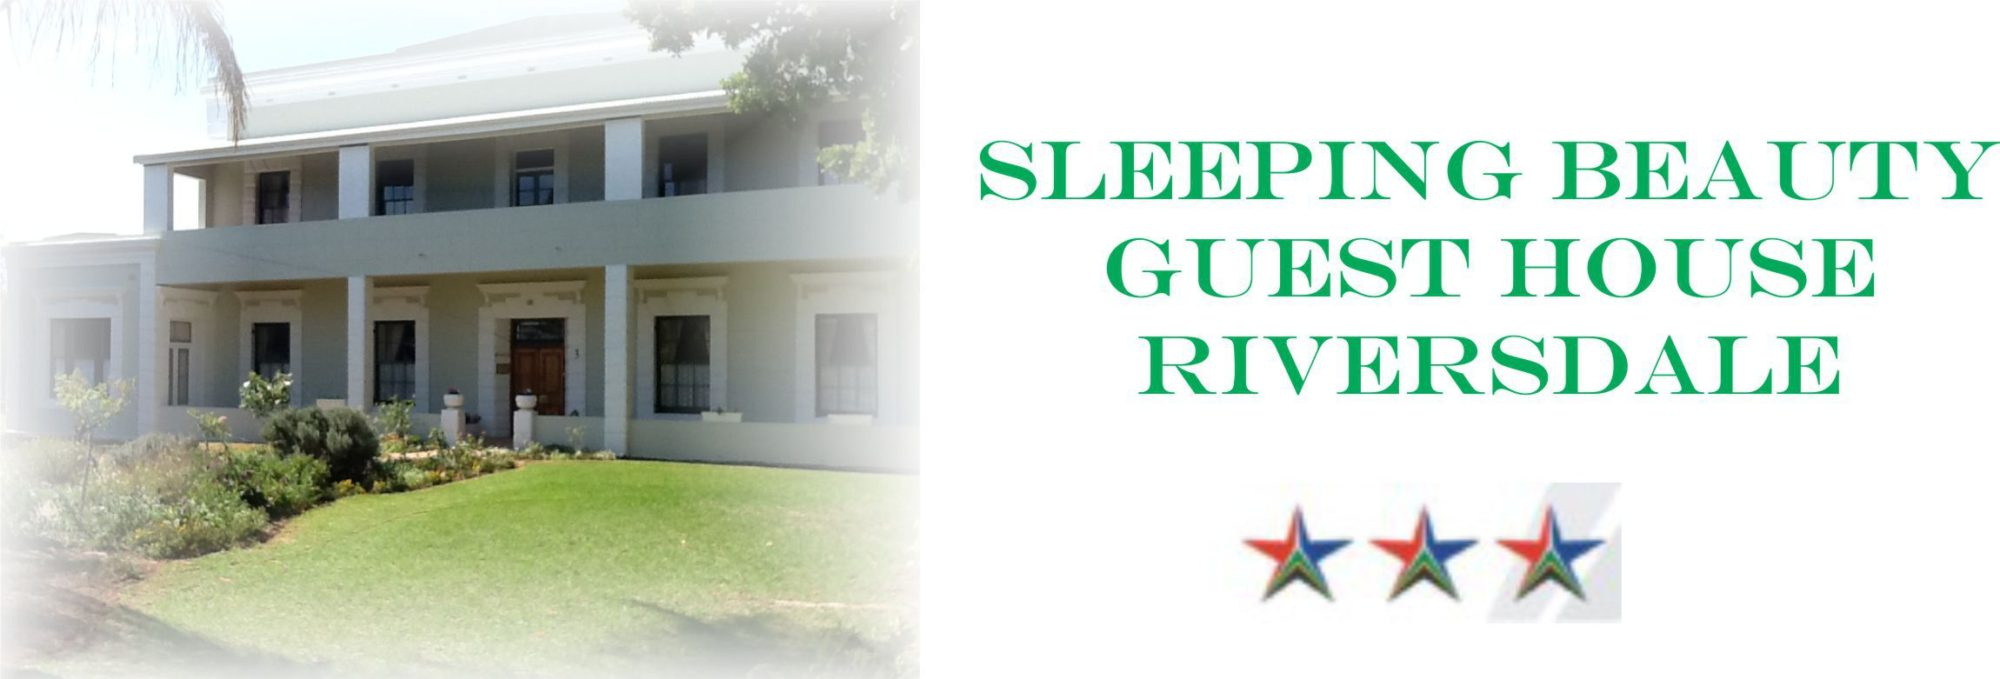 Sleeping Beauty Guest House, Riversdale, South Africa